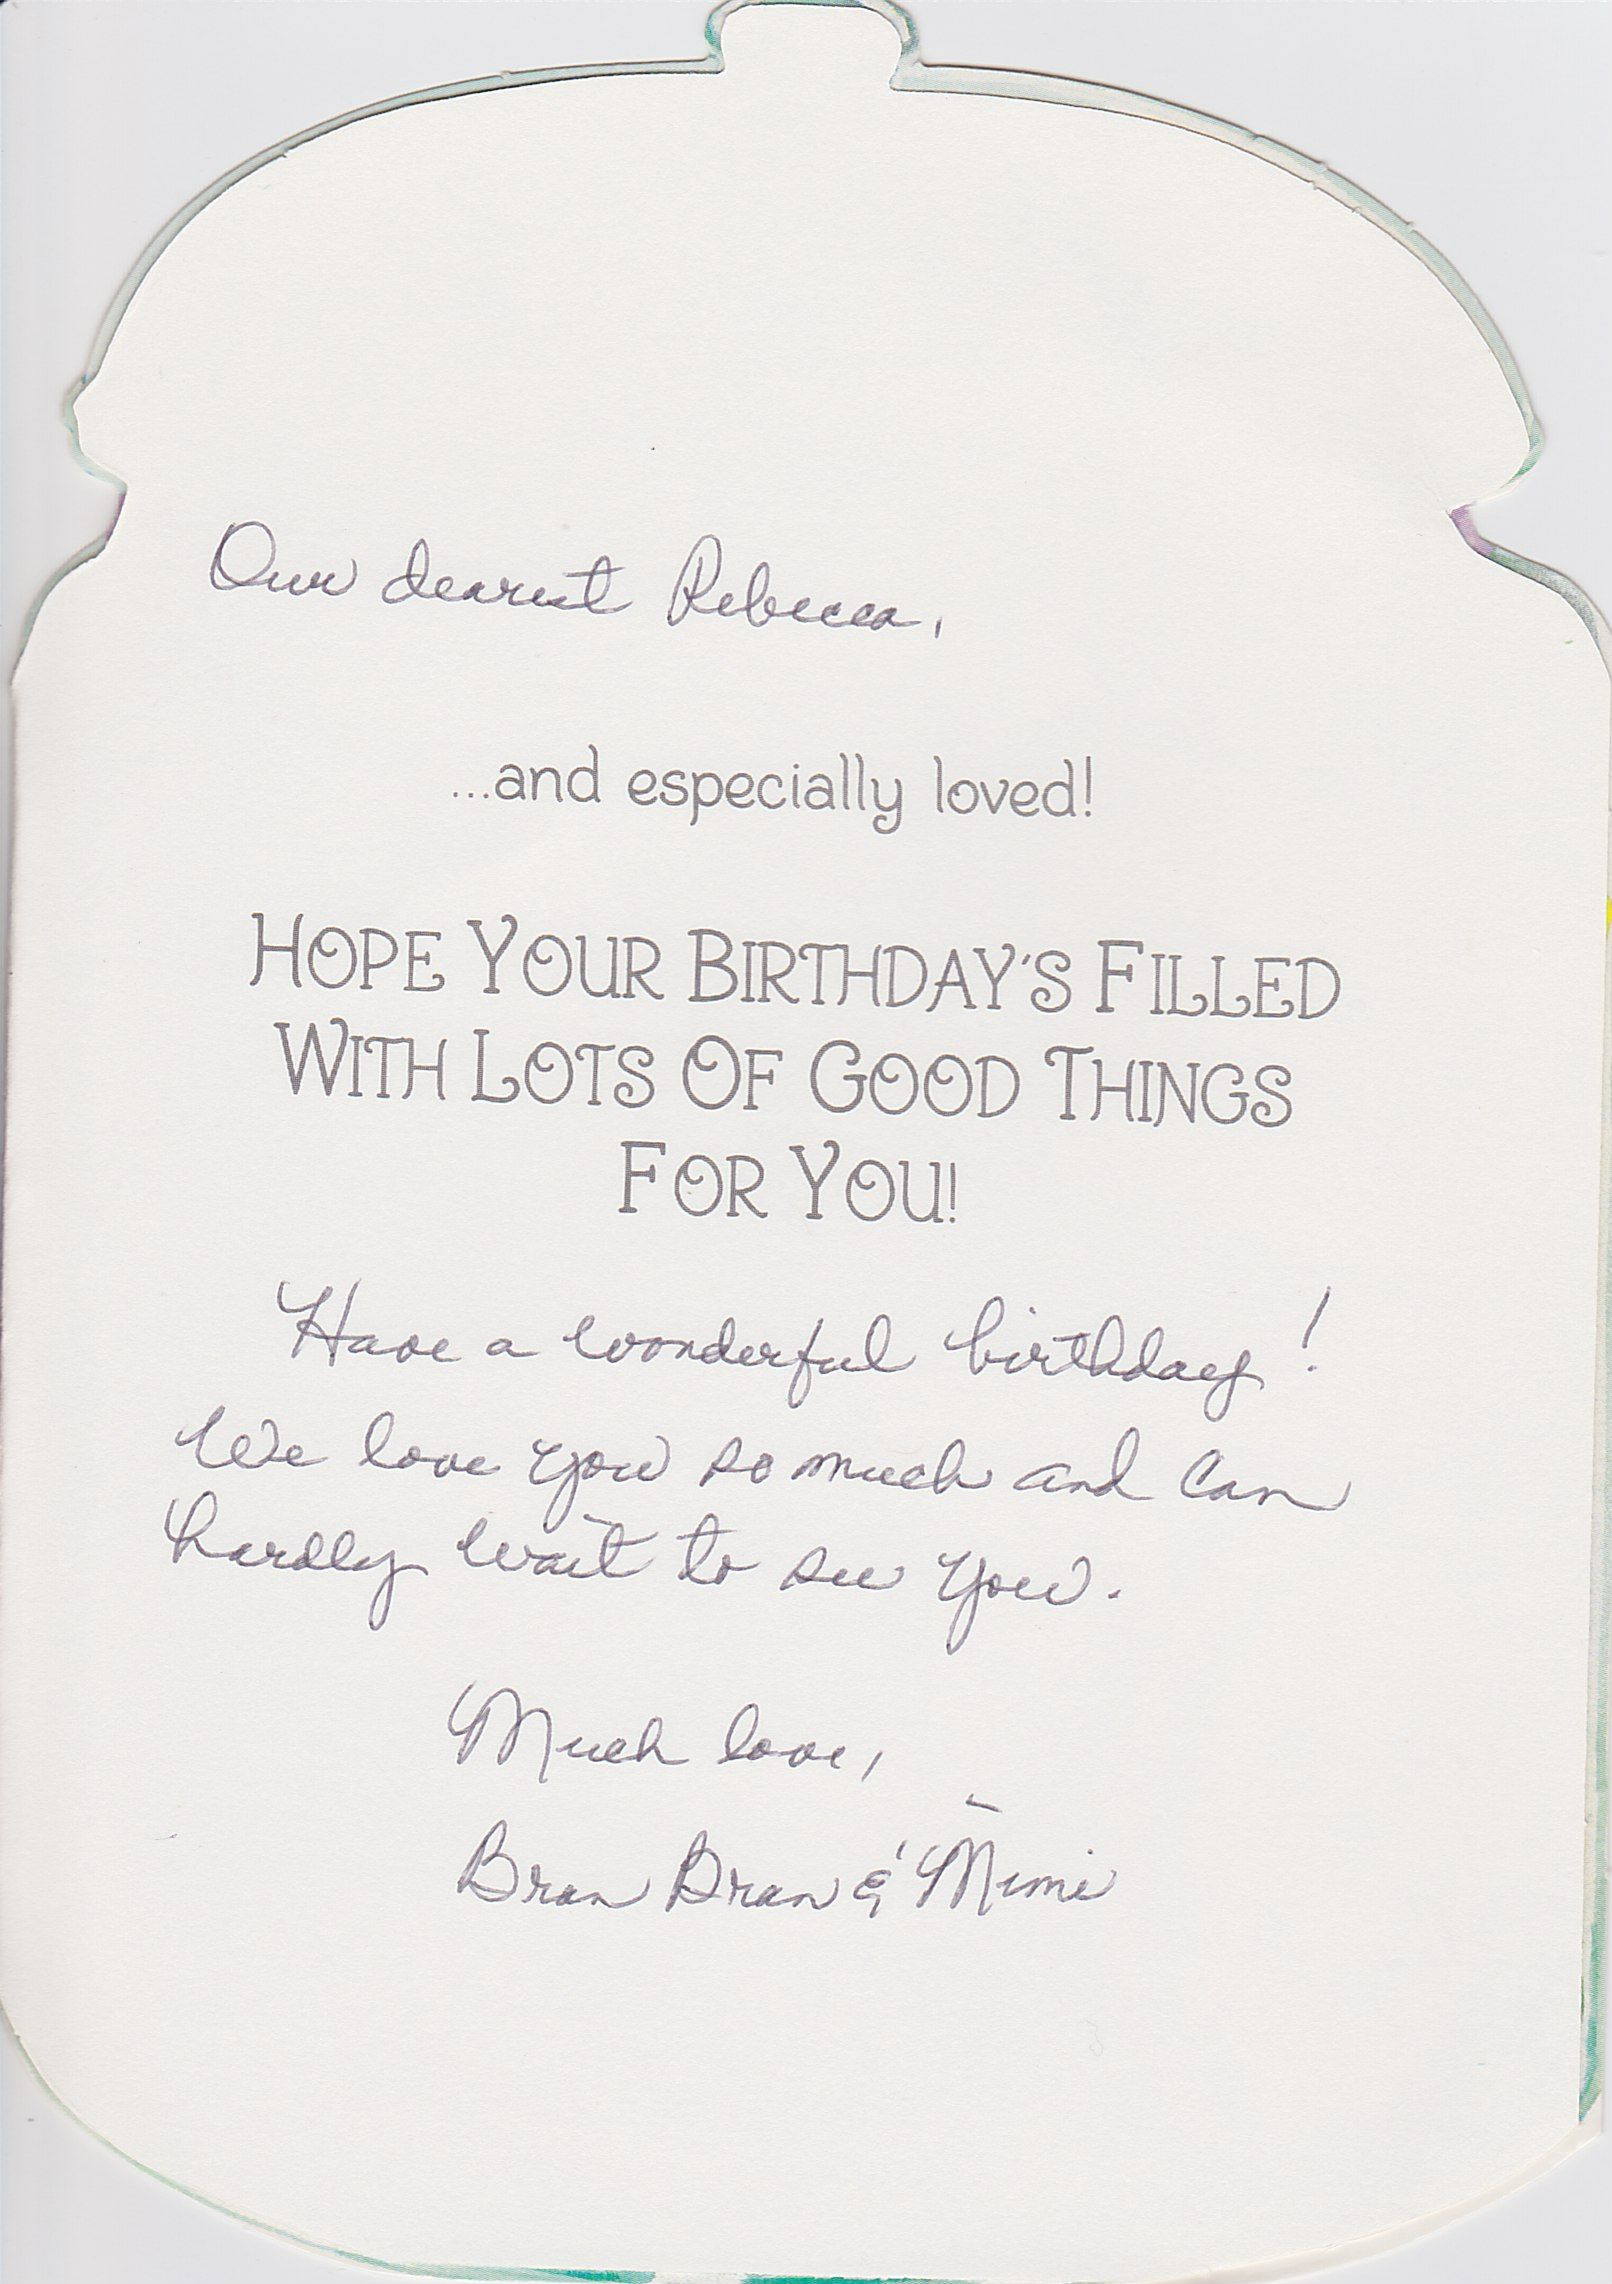 Happy Birthday Card from Mimi and Bran Bran for Rebecca. (II